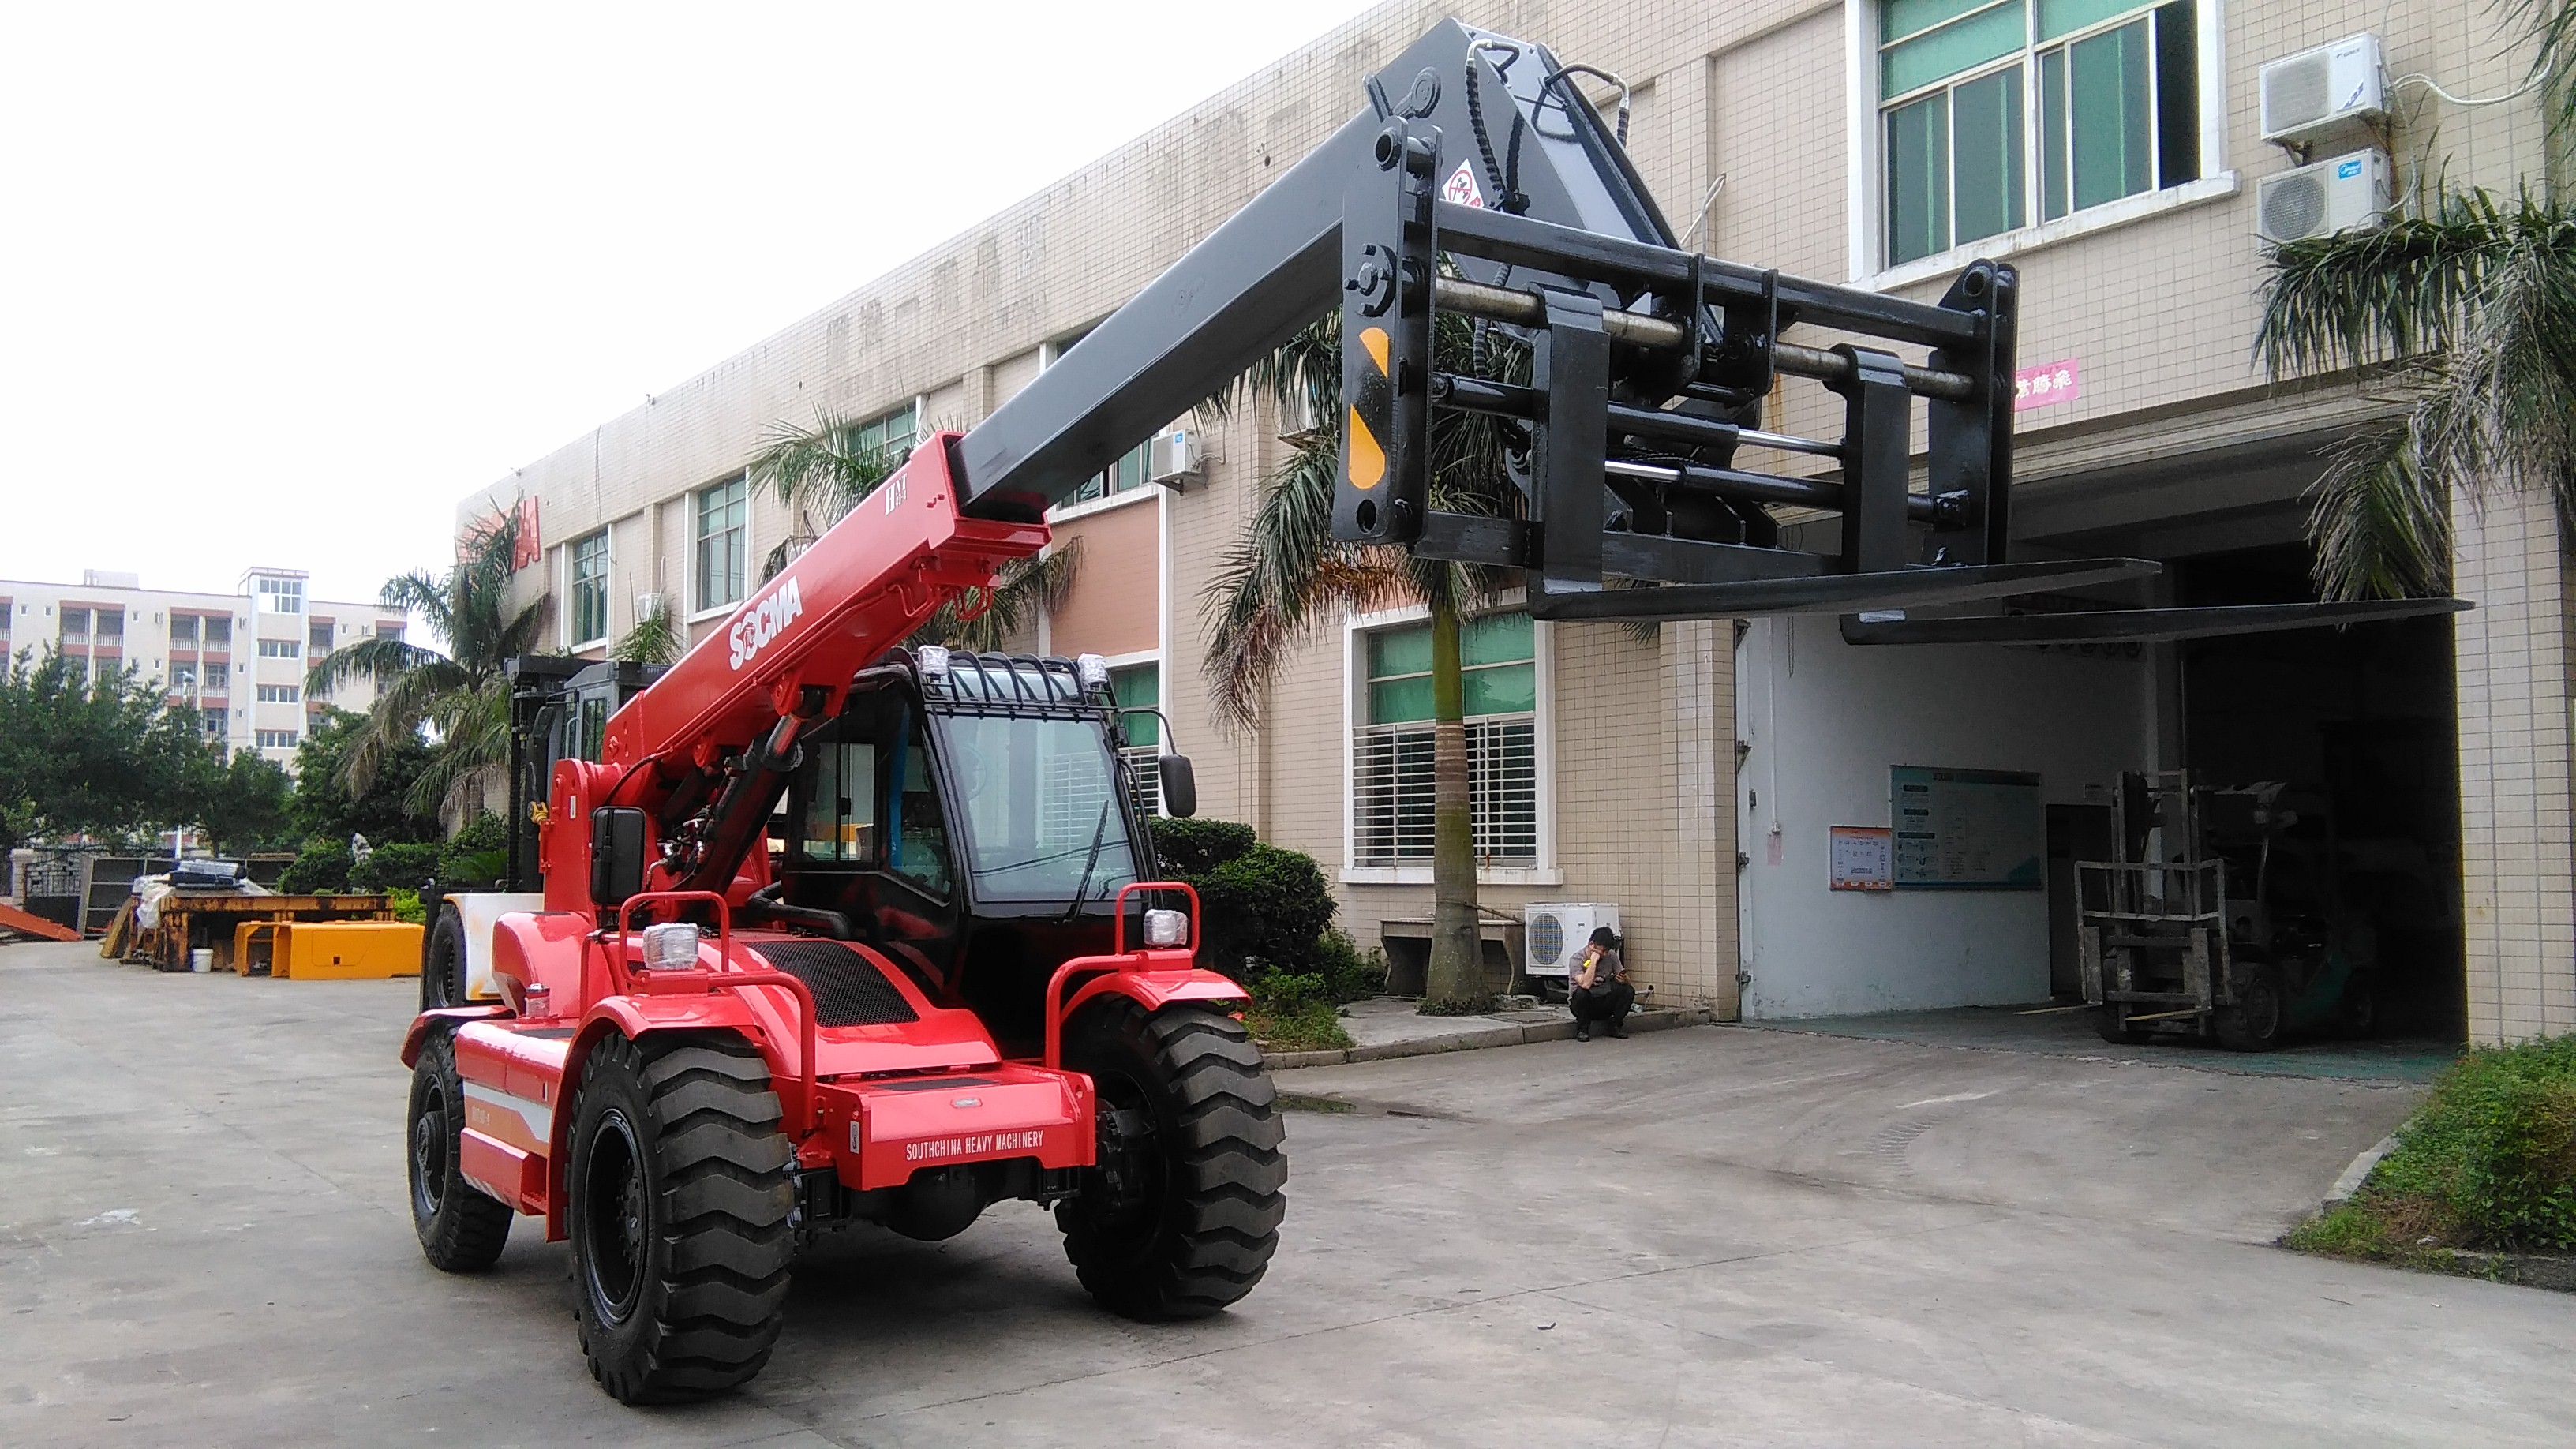 2.5, 3, 3.5, 4, 5 tons Forklifts 10m max lifting height telehandler